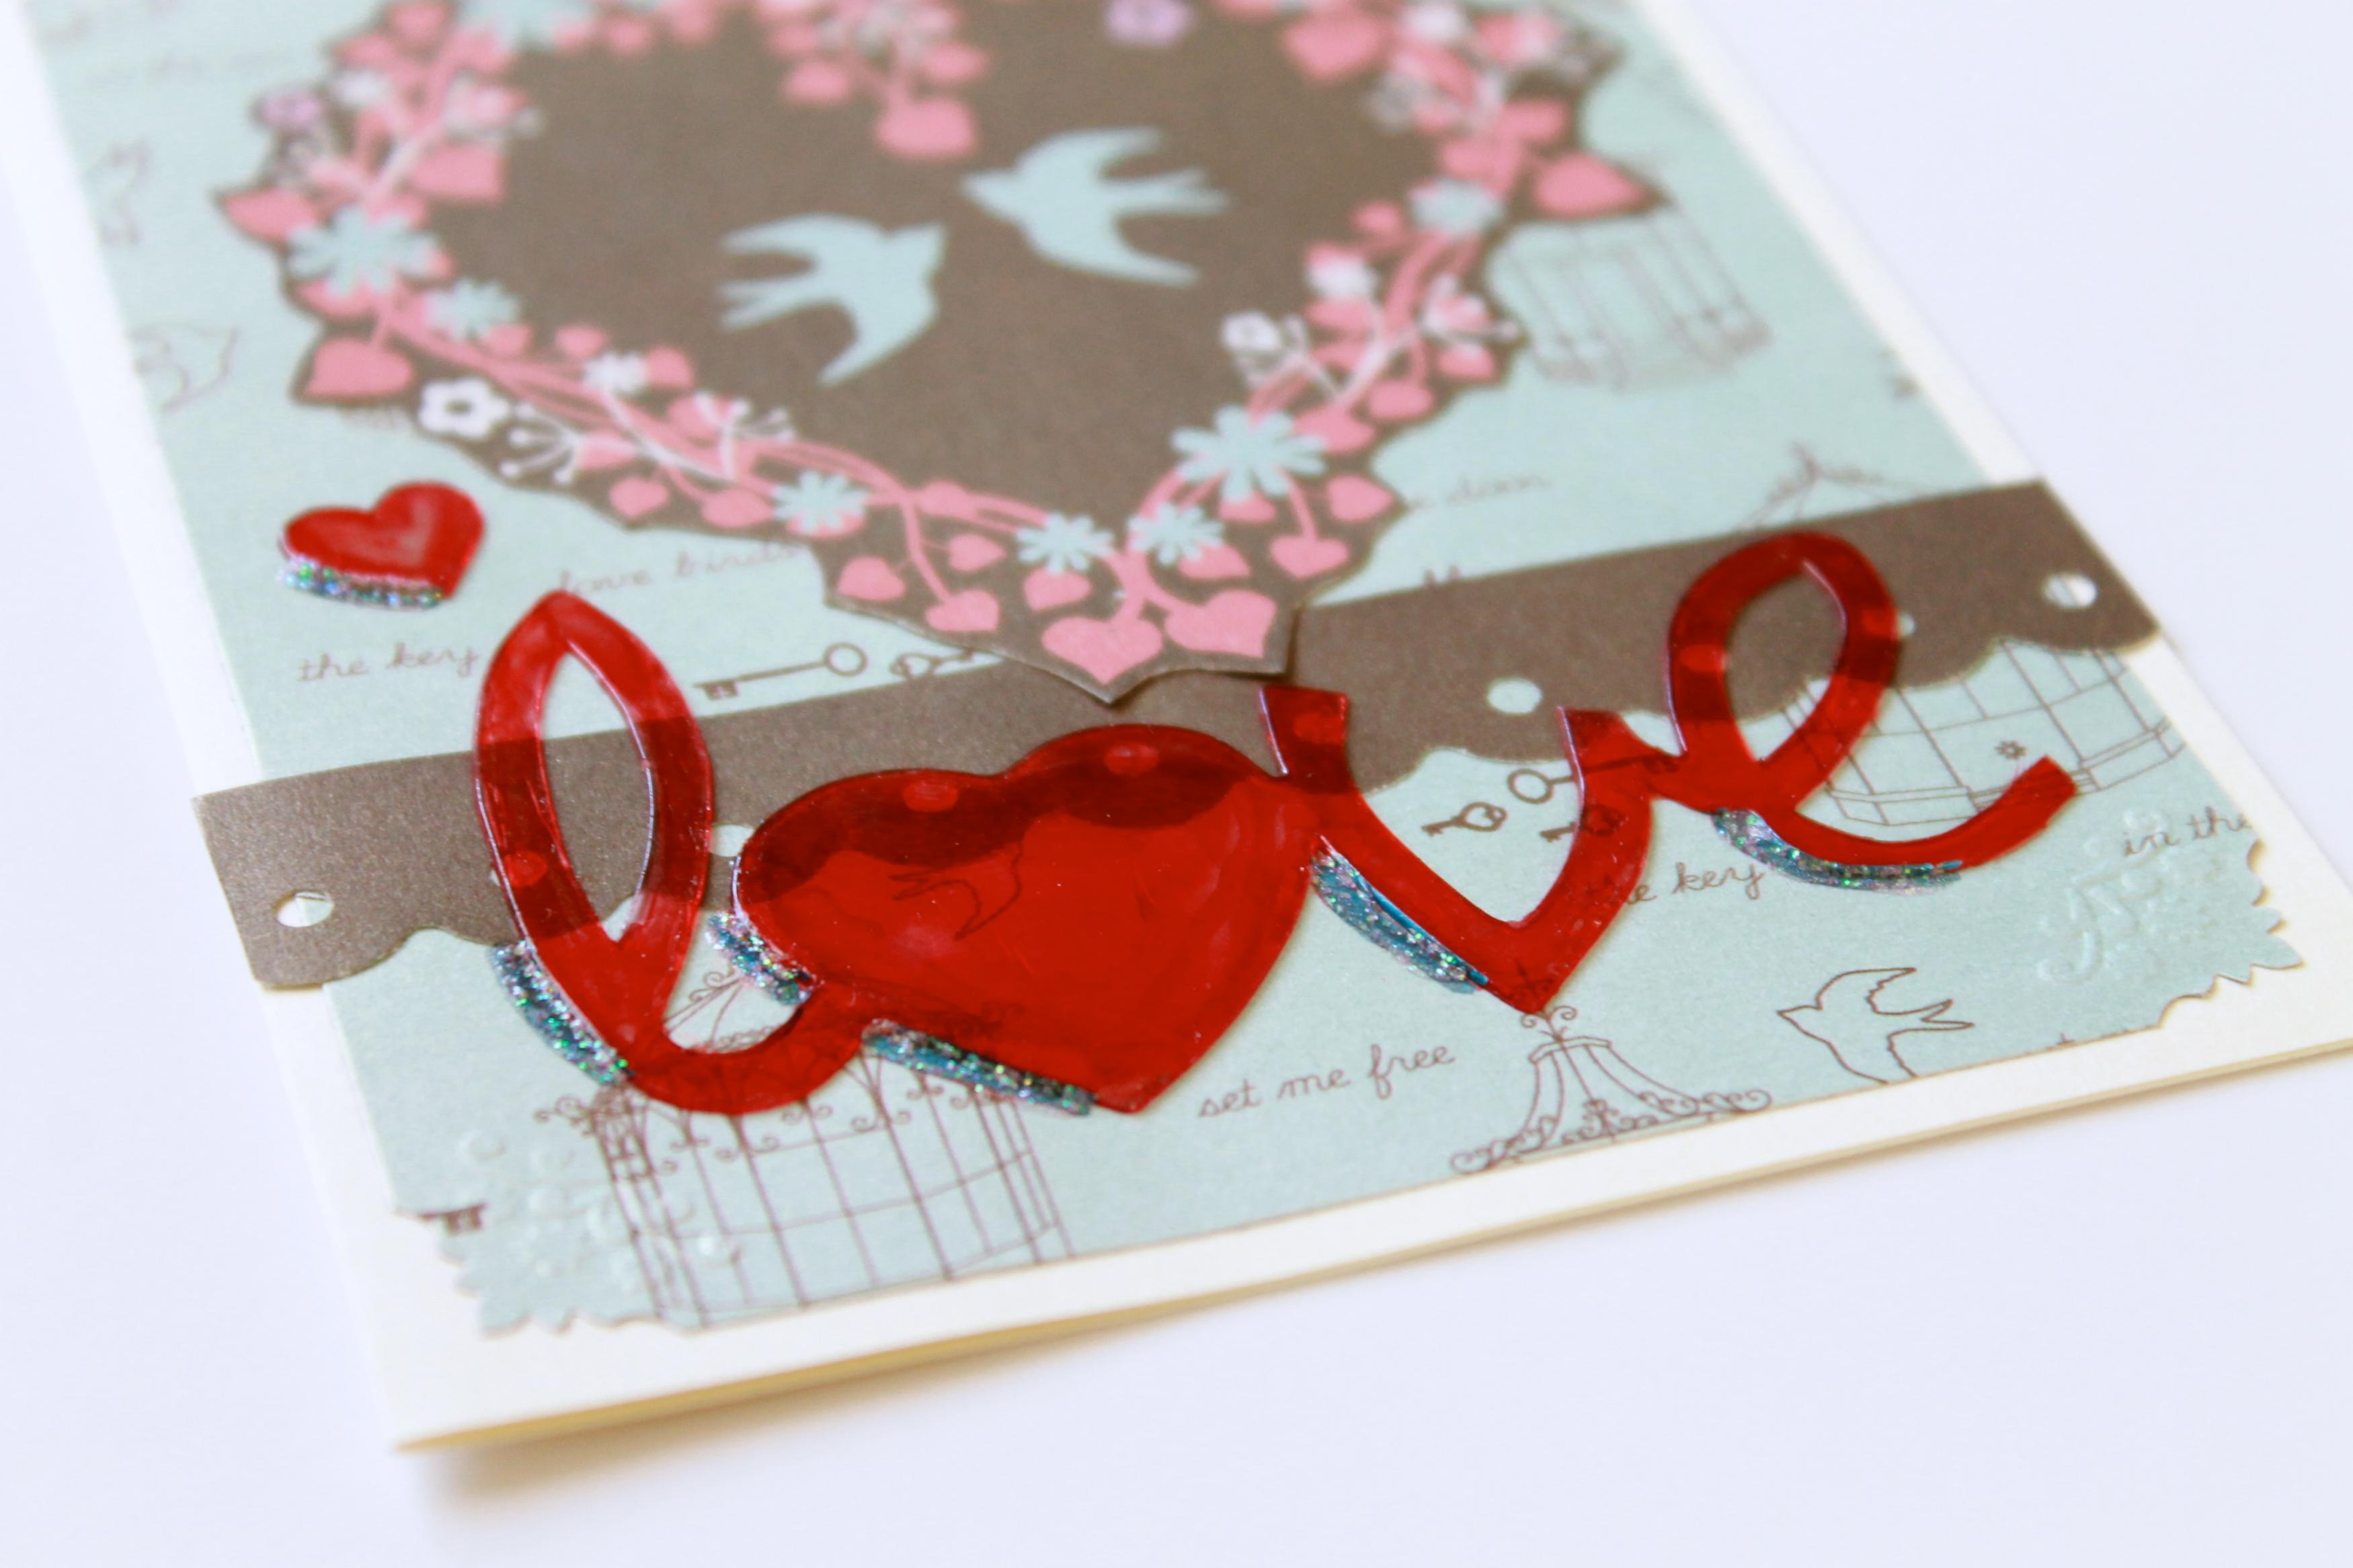 Love Birds Handmade Greeting Card Blank Inside By The Leaf Studio